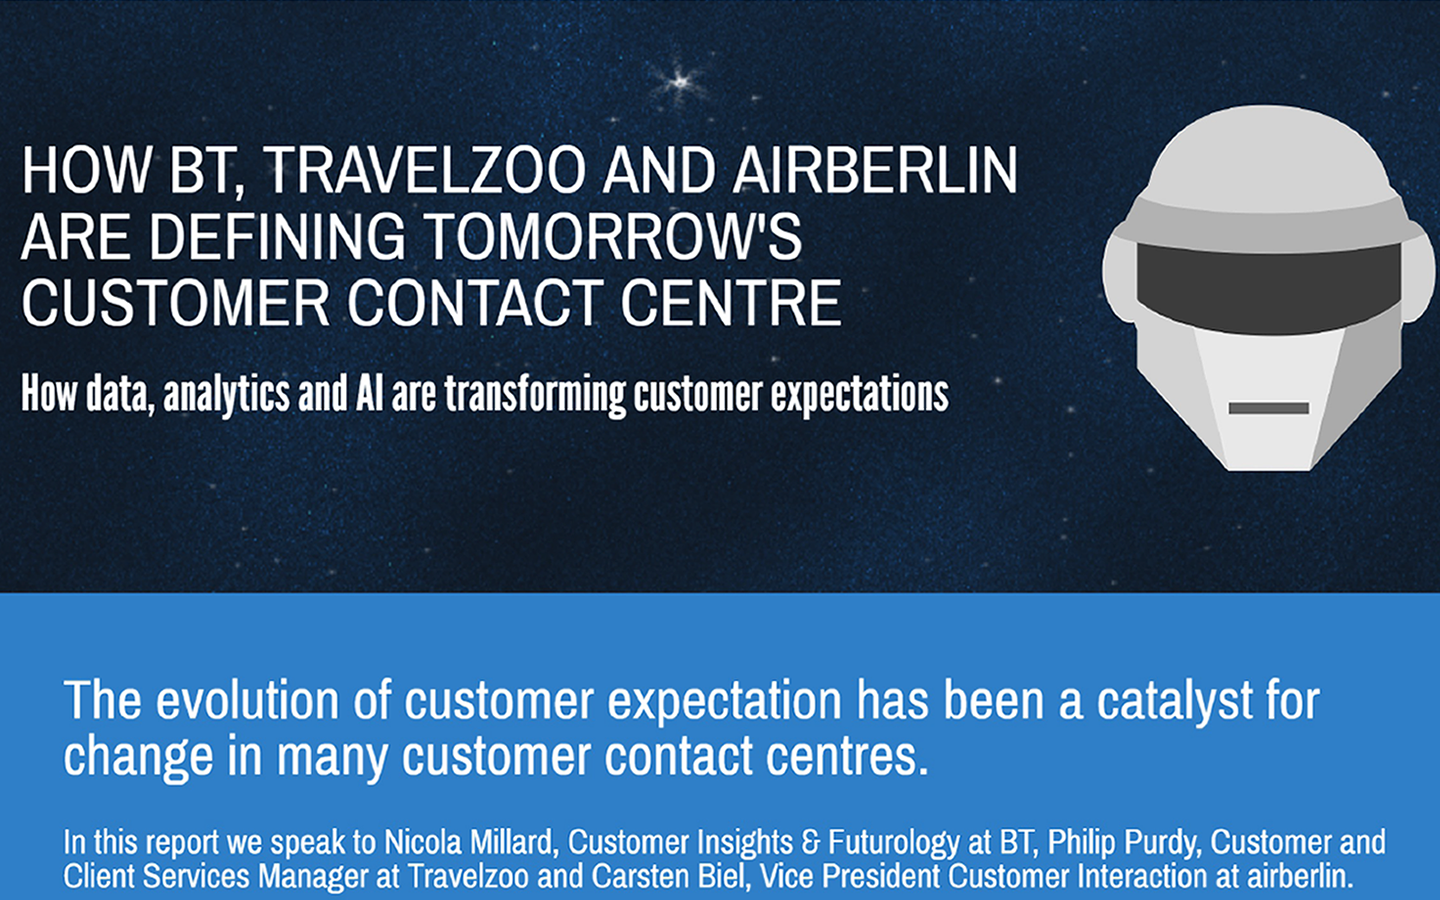 HOW BT, TRAVELZOO AND AIRBERLIN ARE DEFINING TOMORROW'S CUSTOMER CONTACT CENTRE